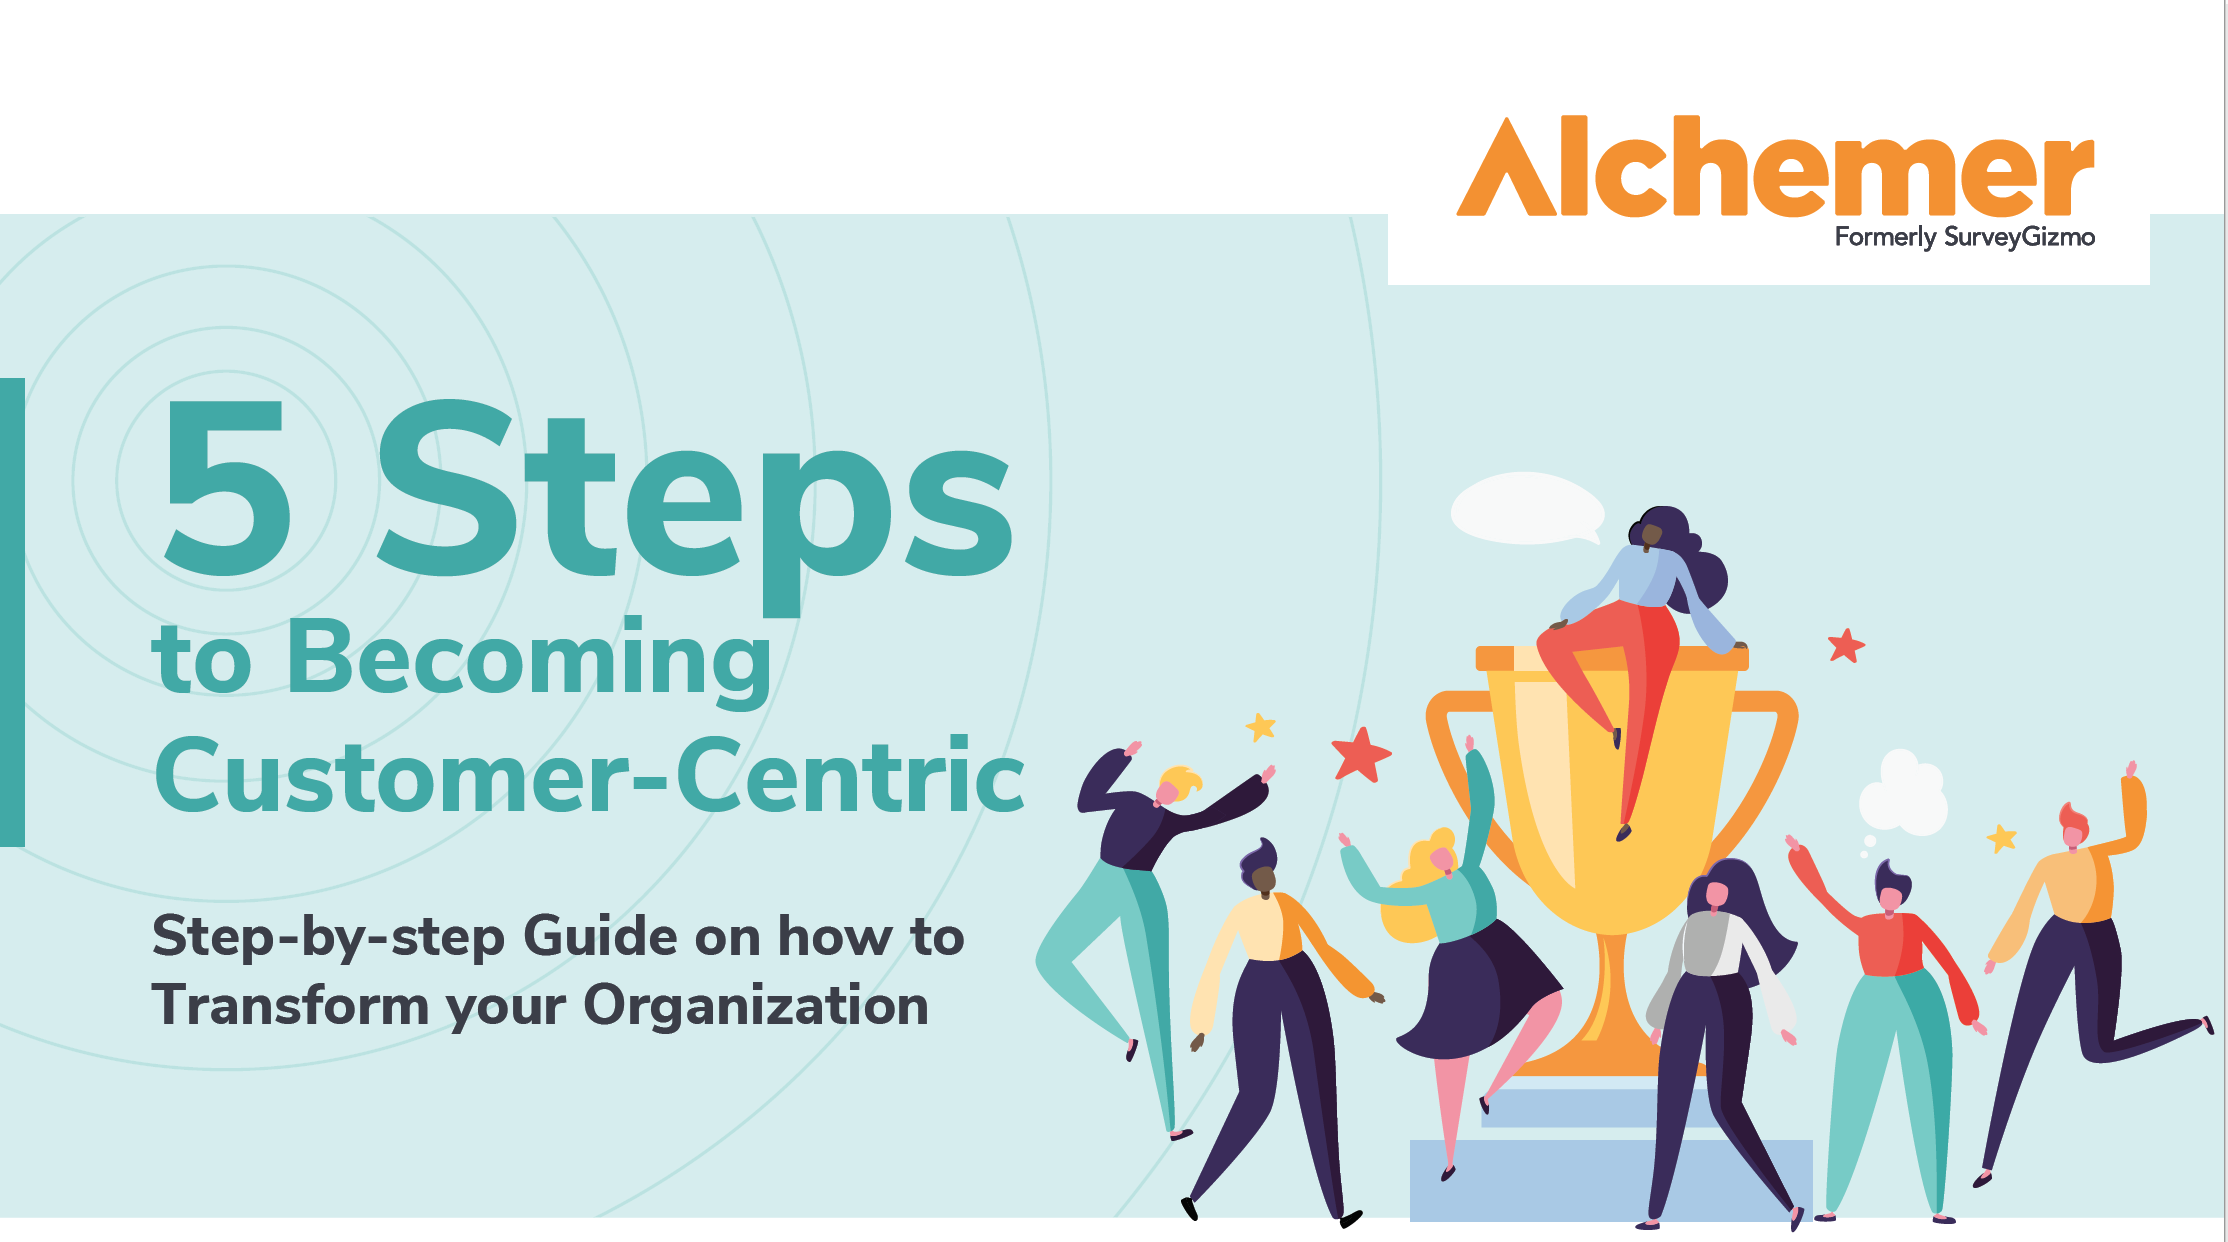 Alchemer 5 Steps to Becoming Customer-Centric